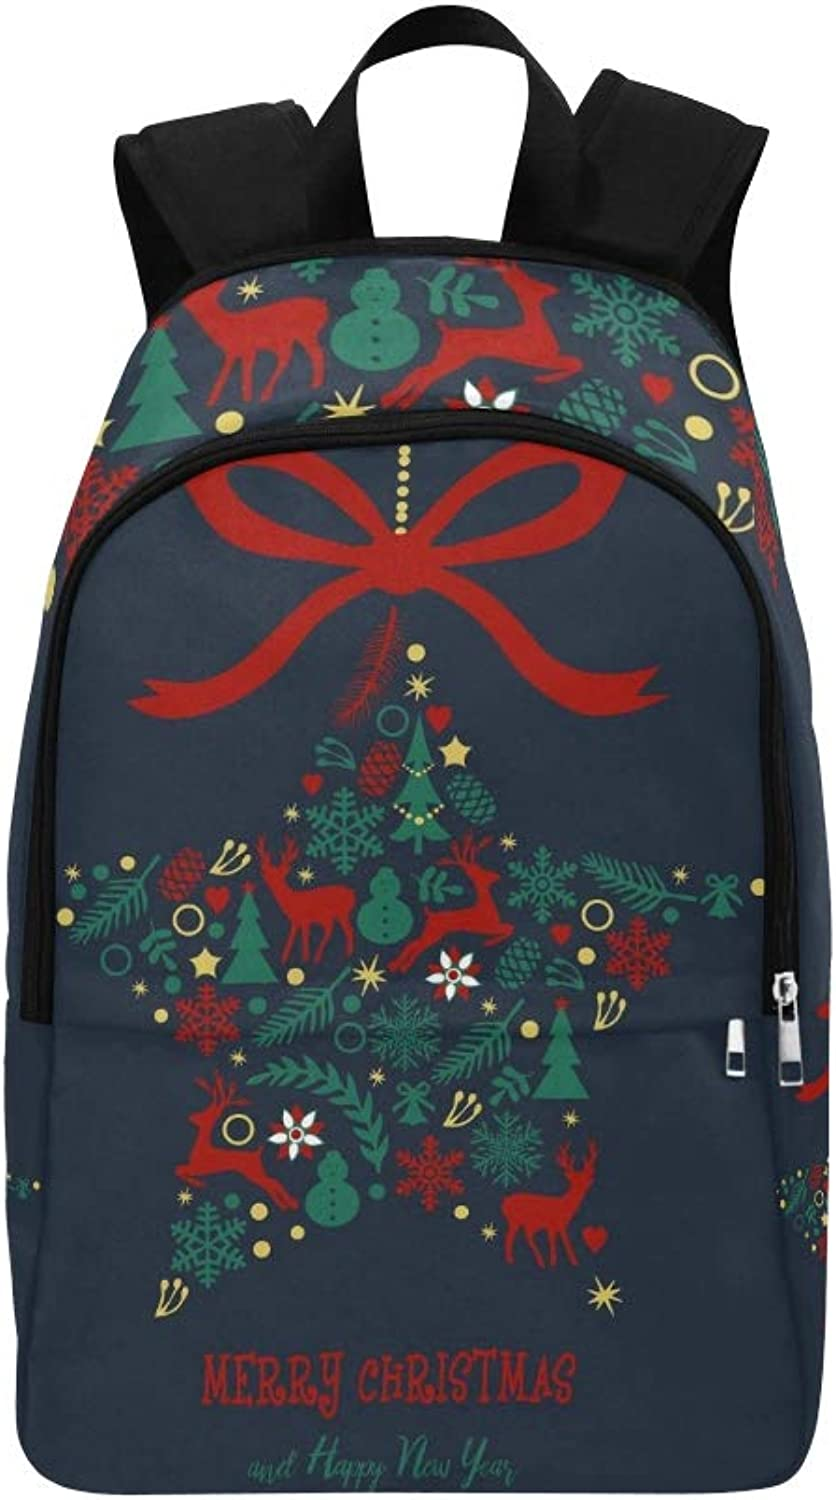 Christmas Ornament Decorative Christmas Elements Casual Daypack Travel Bag College School Backpack for Mens and Women